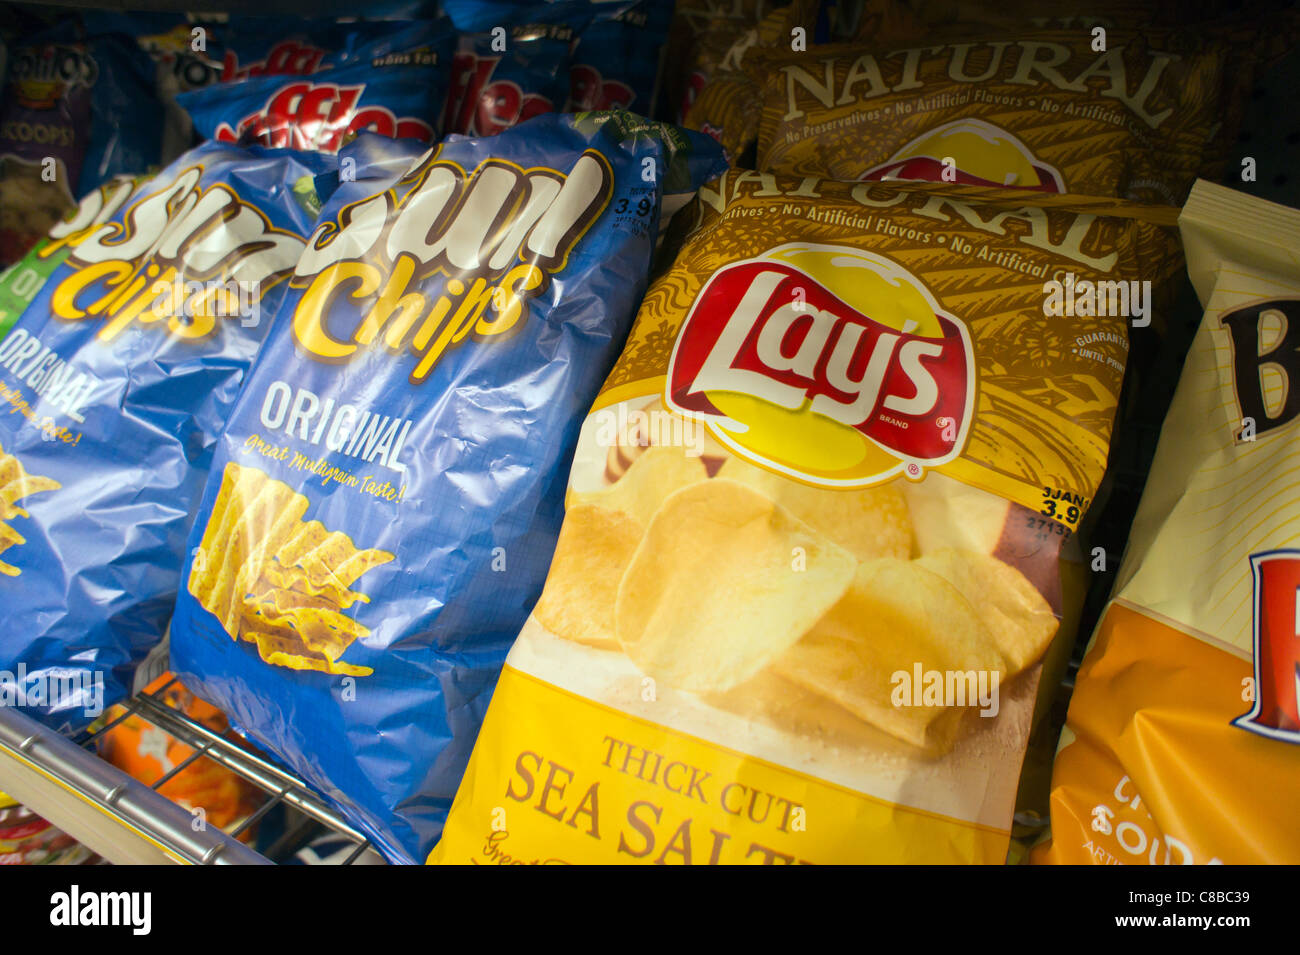 a display of pepsico frito lay brand fritos and sun chips snacks in